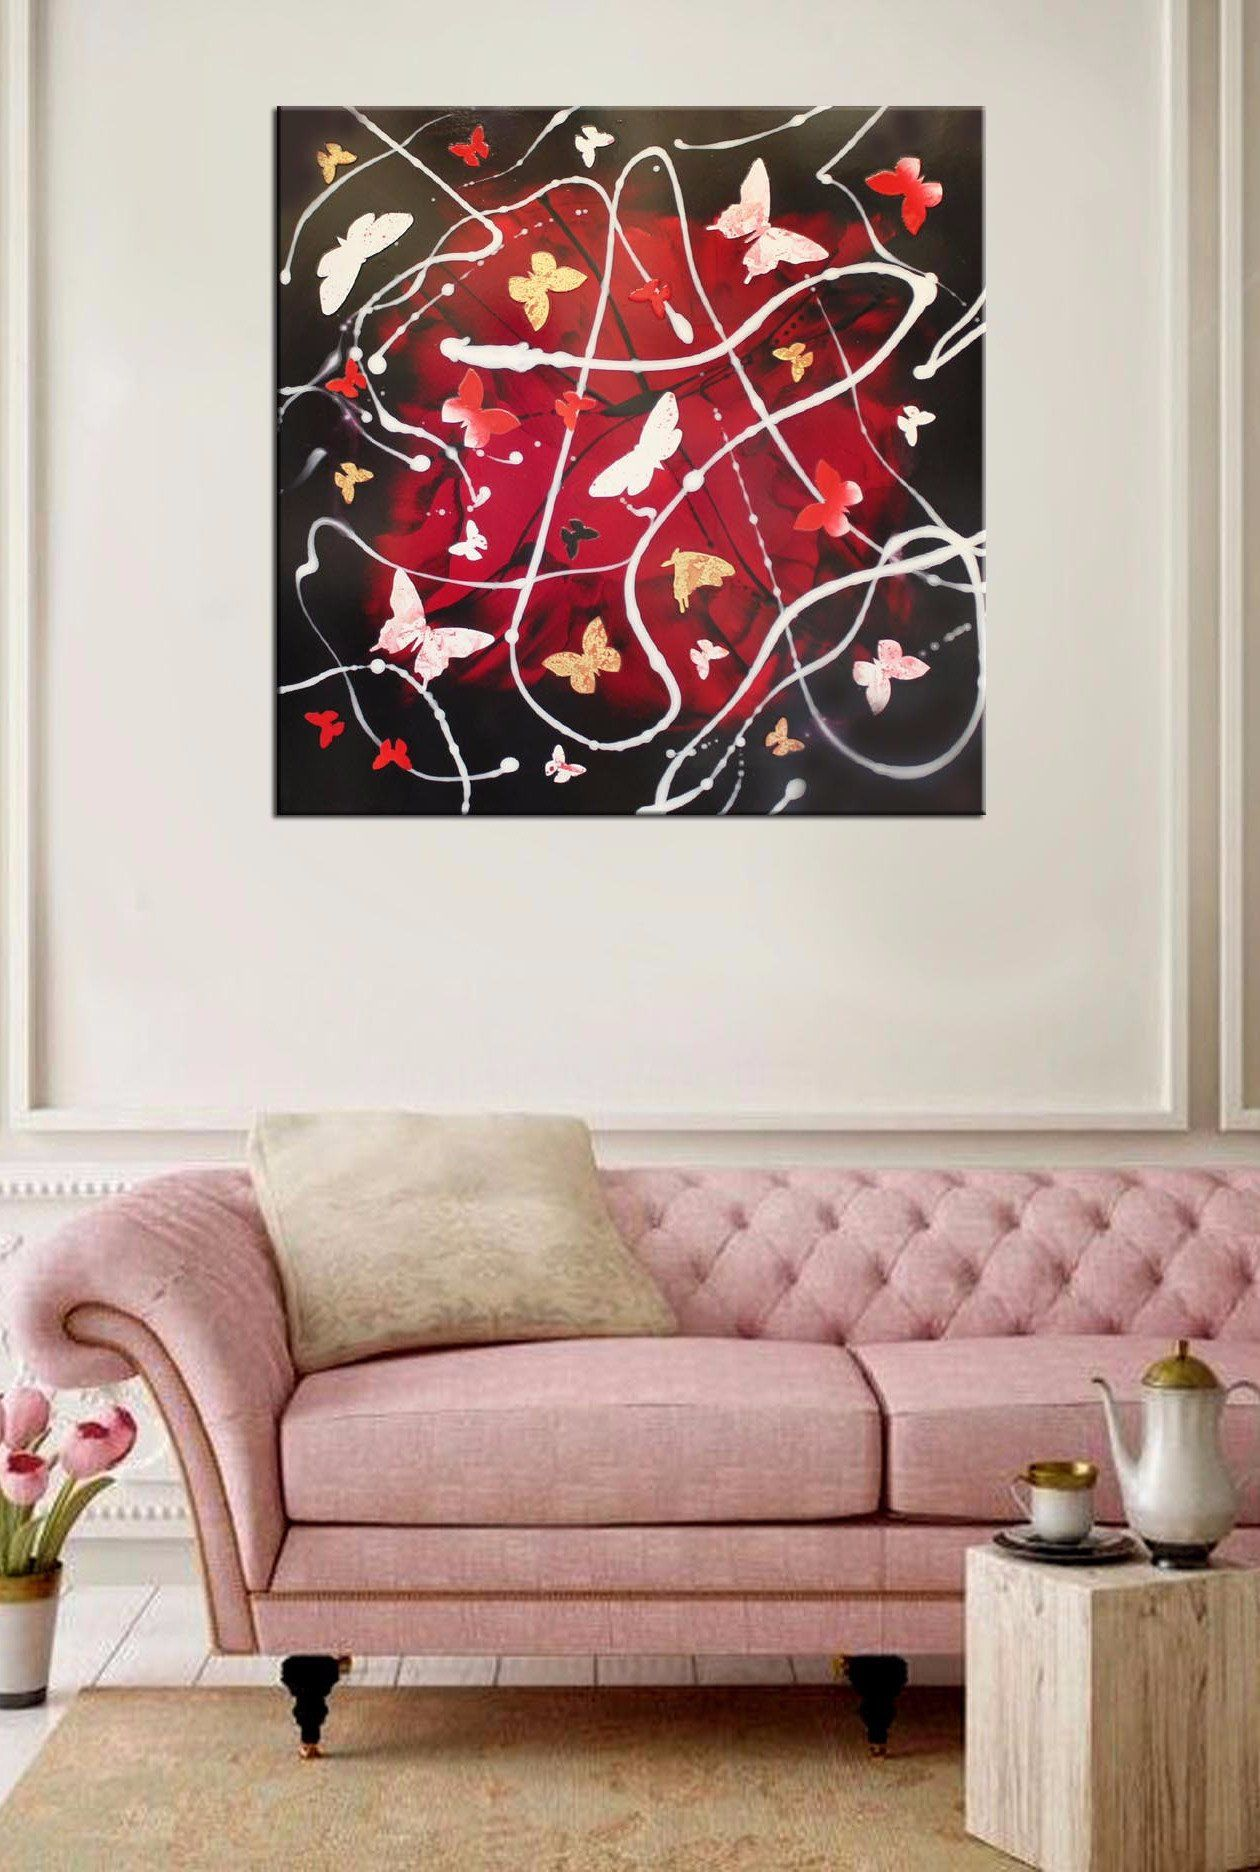 Scarlett Dream (Gloss) Butterfly Wall Artbutterfly Paintingpainting Abstractcollage